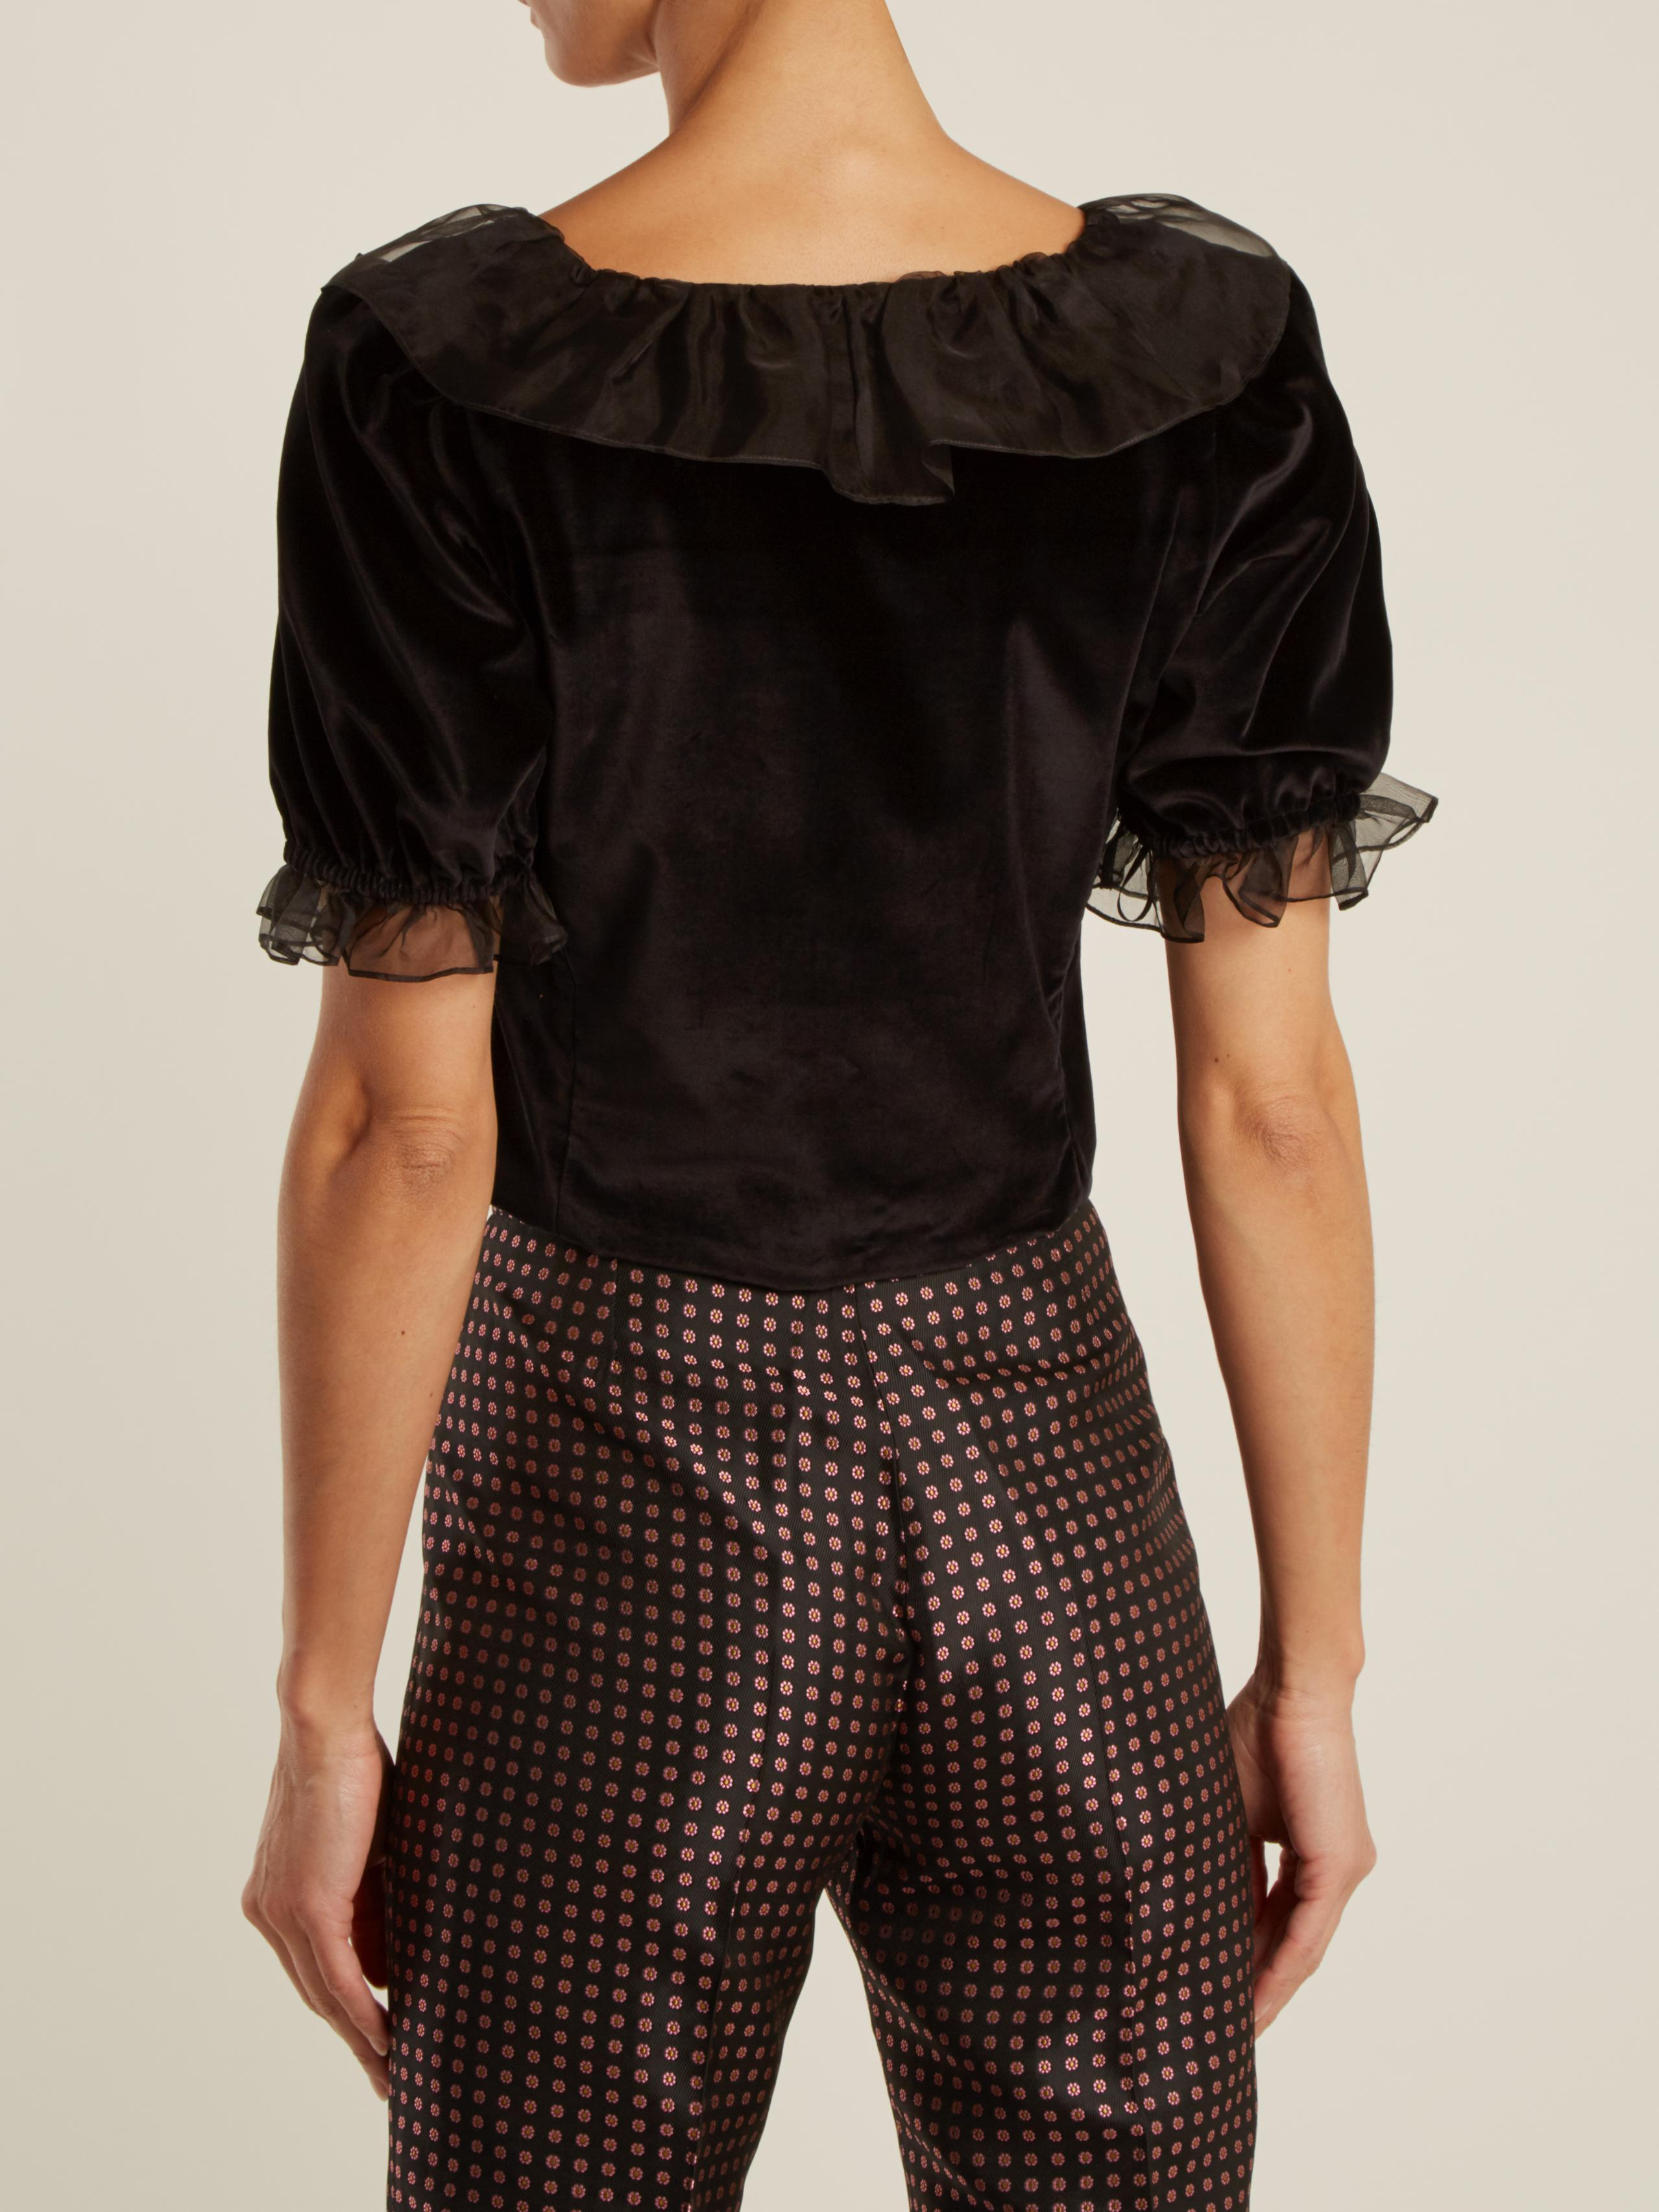 0ff10f20ff3a7 Lyst - ALEXACHUNG Ruffle-trimmed Velvet Cropped Top in Black